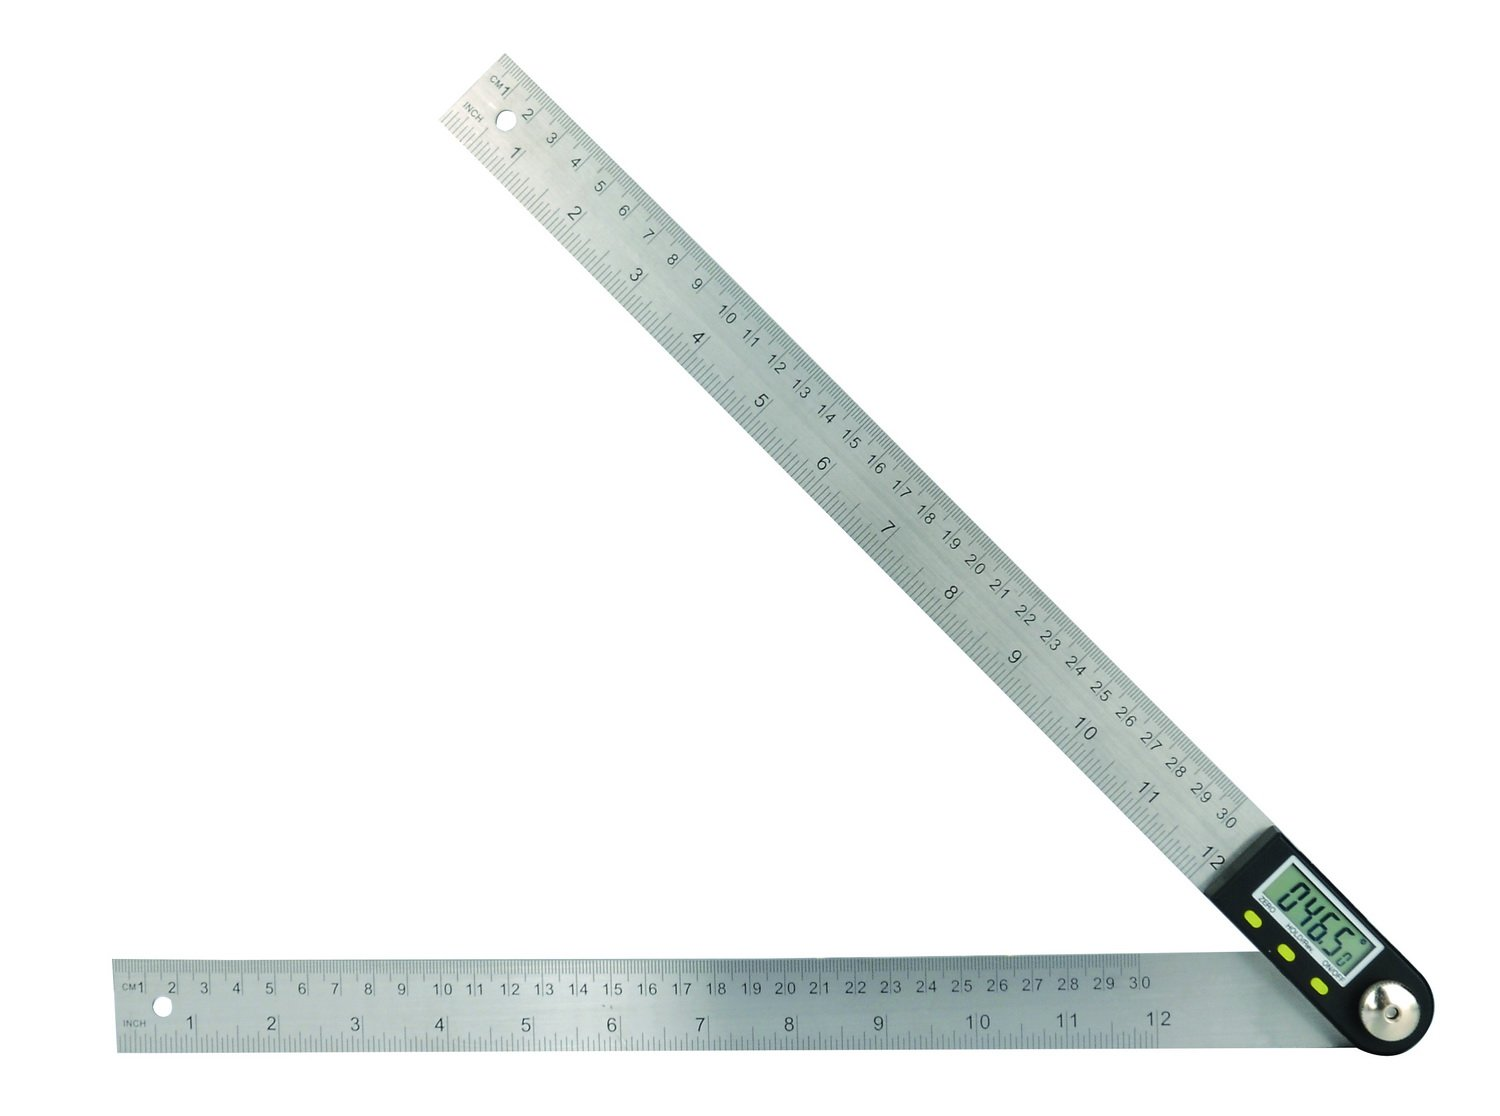 Meba 12 Inches Stainless Steel Digital Angle Ruler Goniometer,angle Finder Ruler,angle Ruler Definition,ruler Angle,